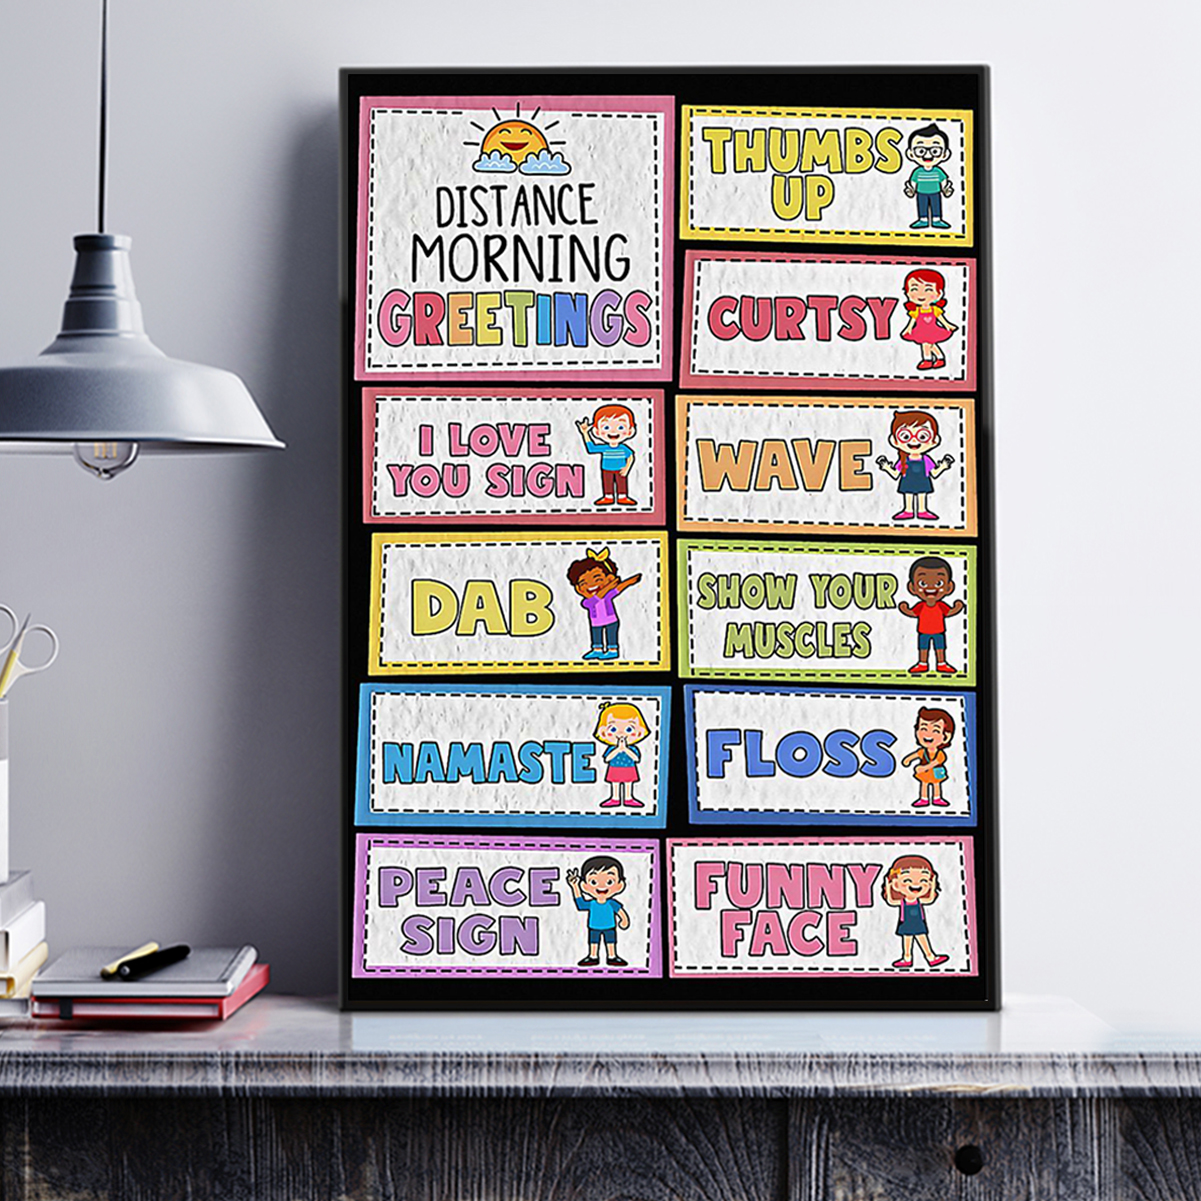 Teacher distance morning greetings poster A3